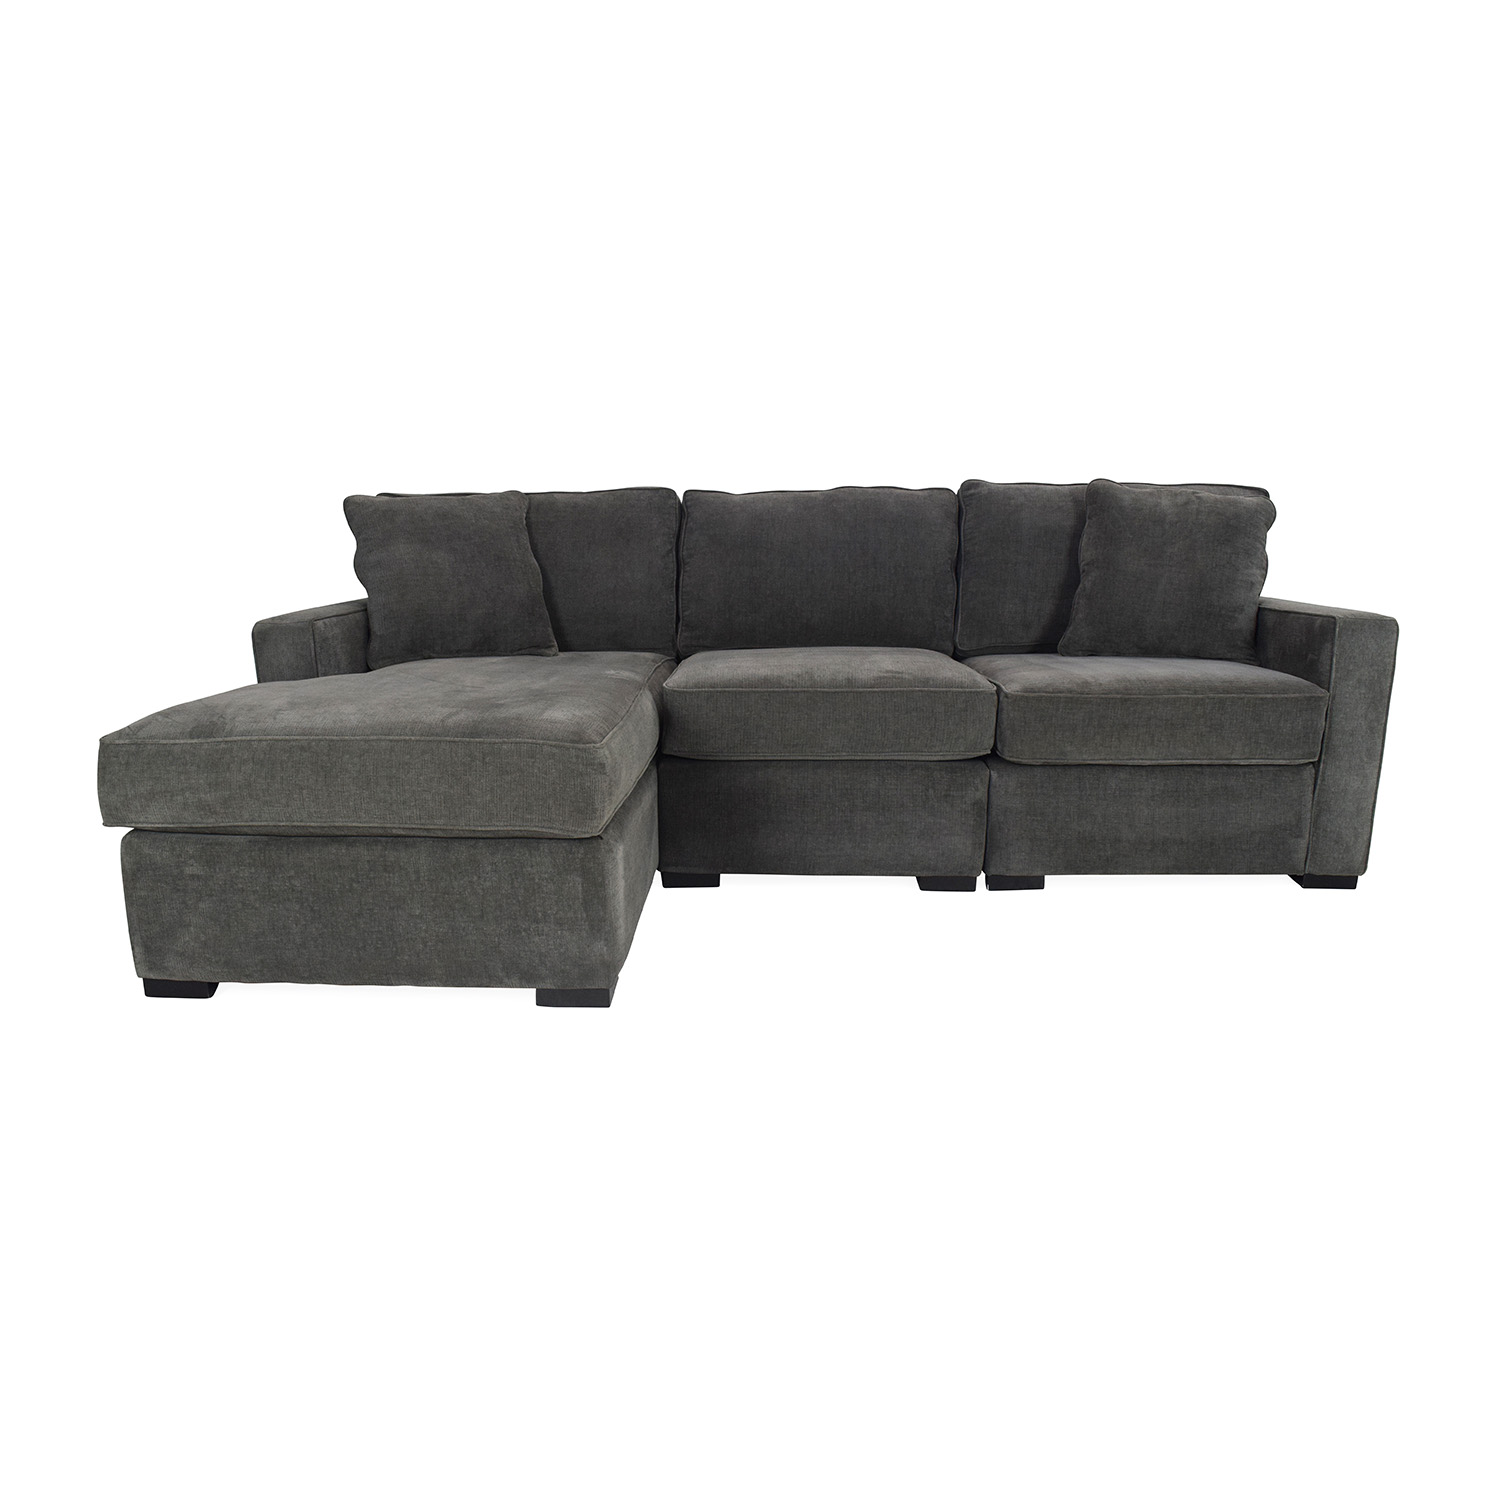 buy Radley Sectional Sofa Macys